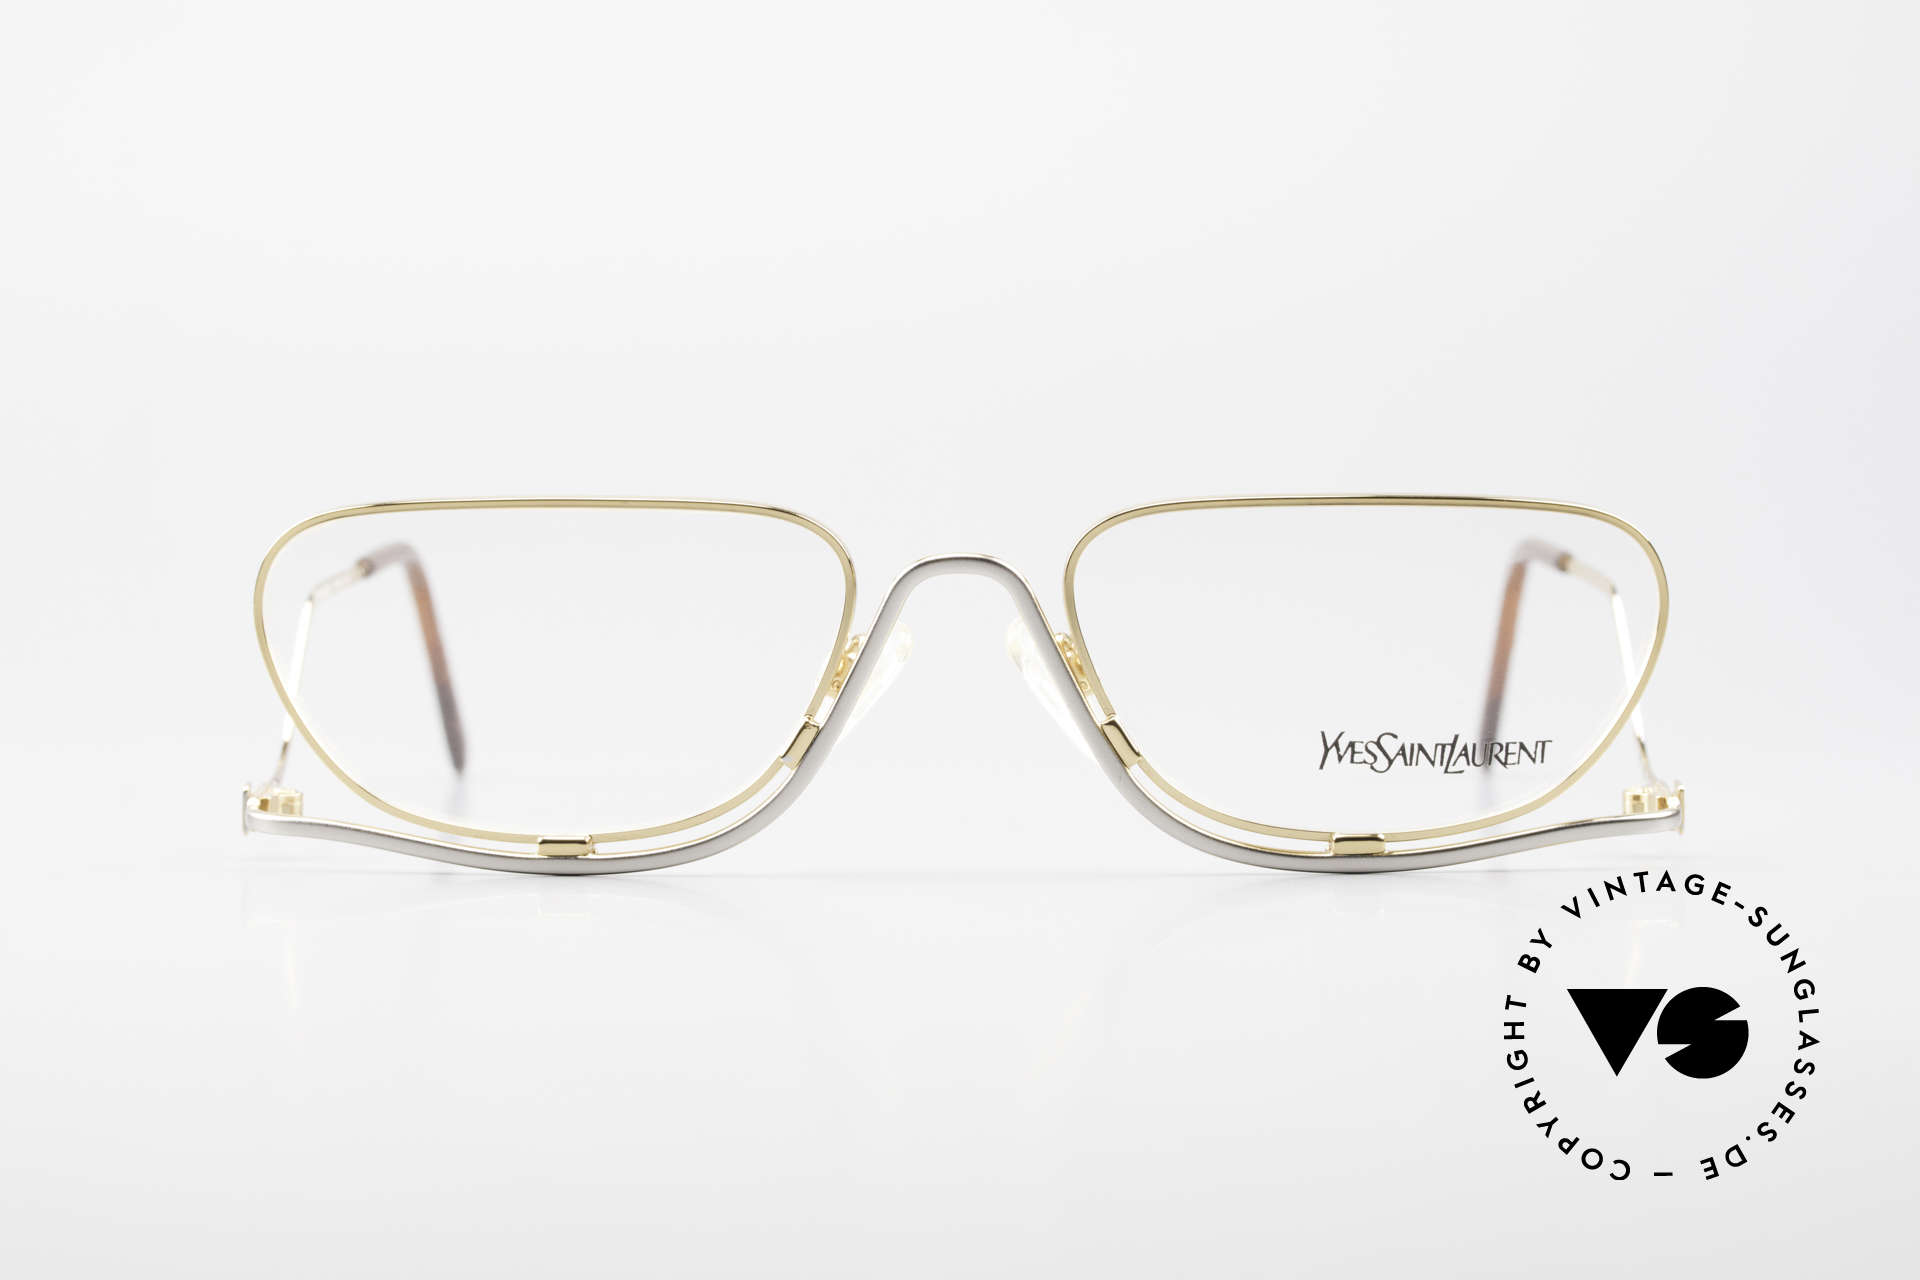 Yves Saint Laurent 4012 Y116 Extraordinary Eyeglasses, by the famous style icon: Yves Saint LAURENT, Made for Women